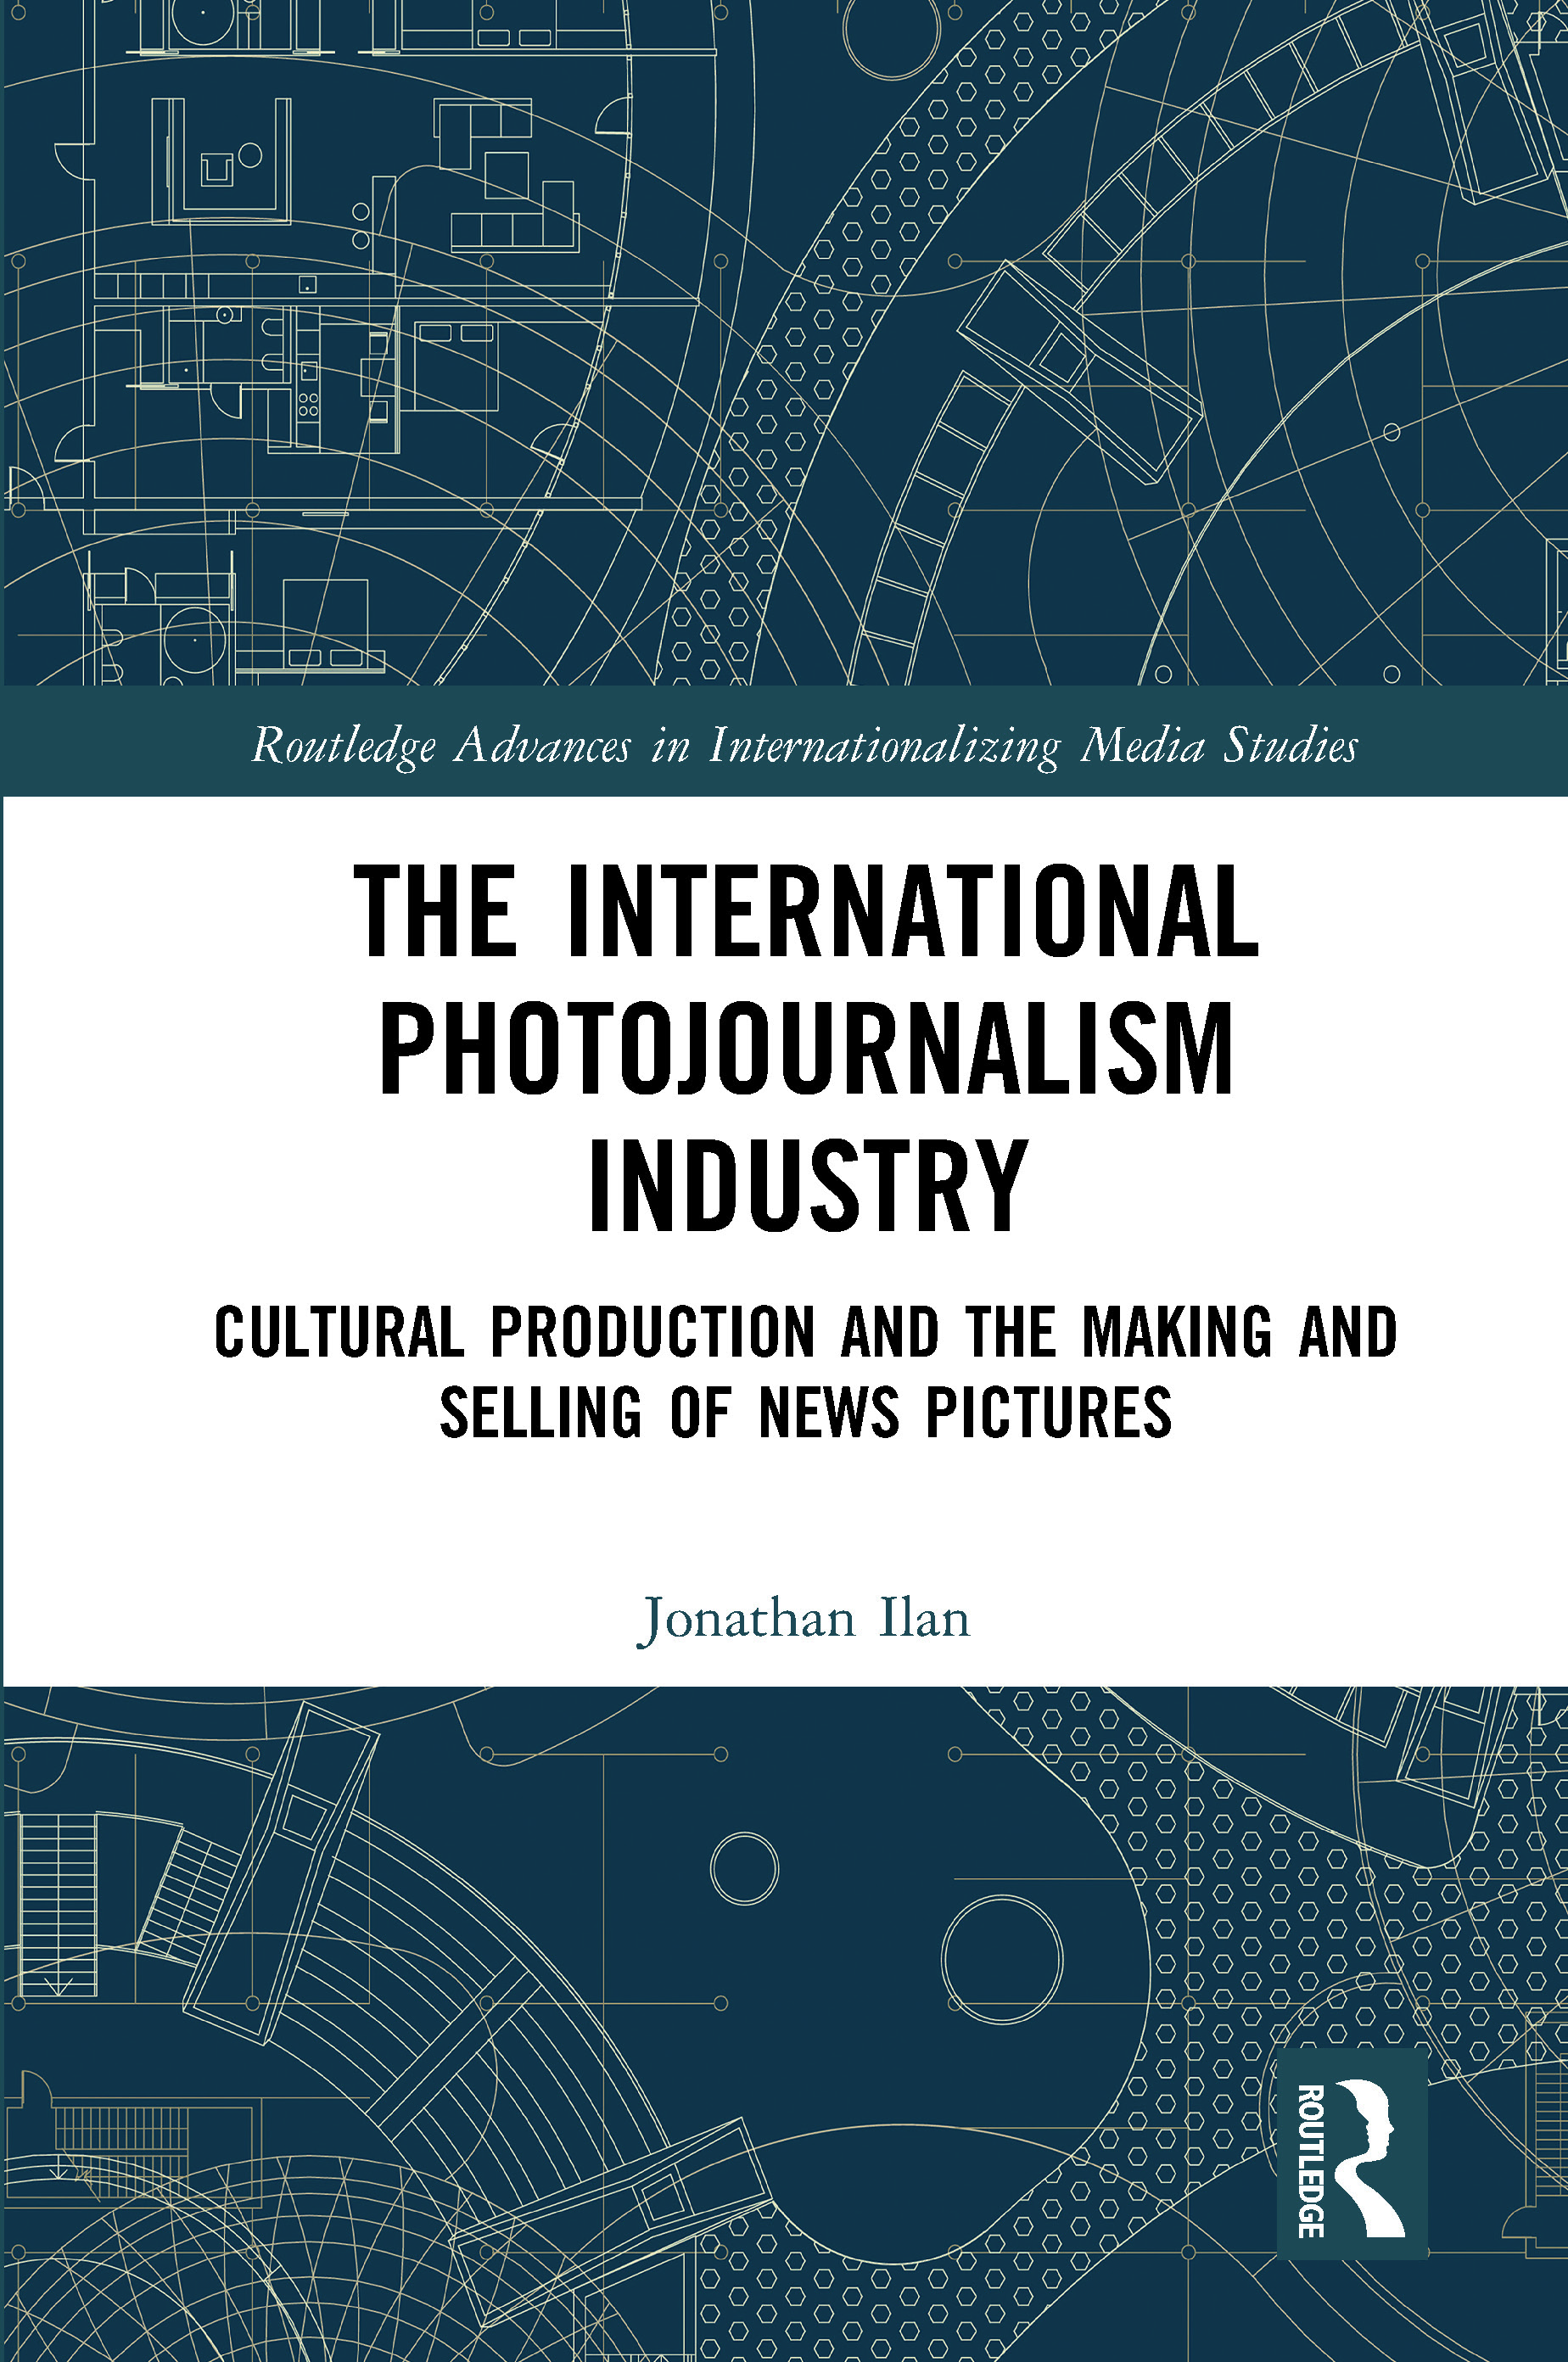 The International Photojournalism Industry: Cultural Production and the Making and Selling of News Pictures book cover